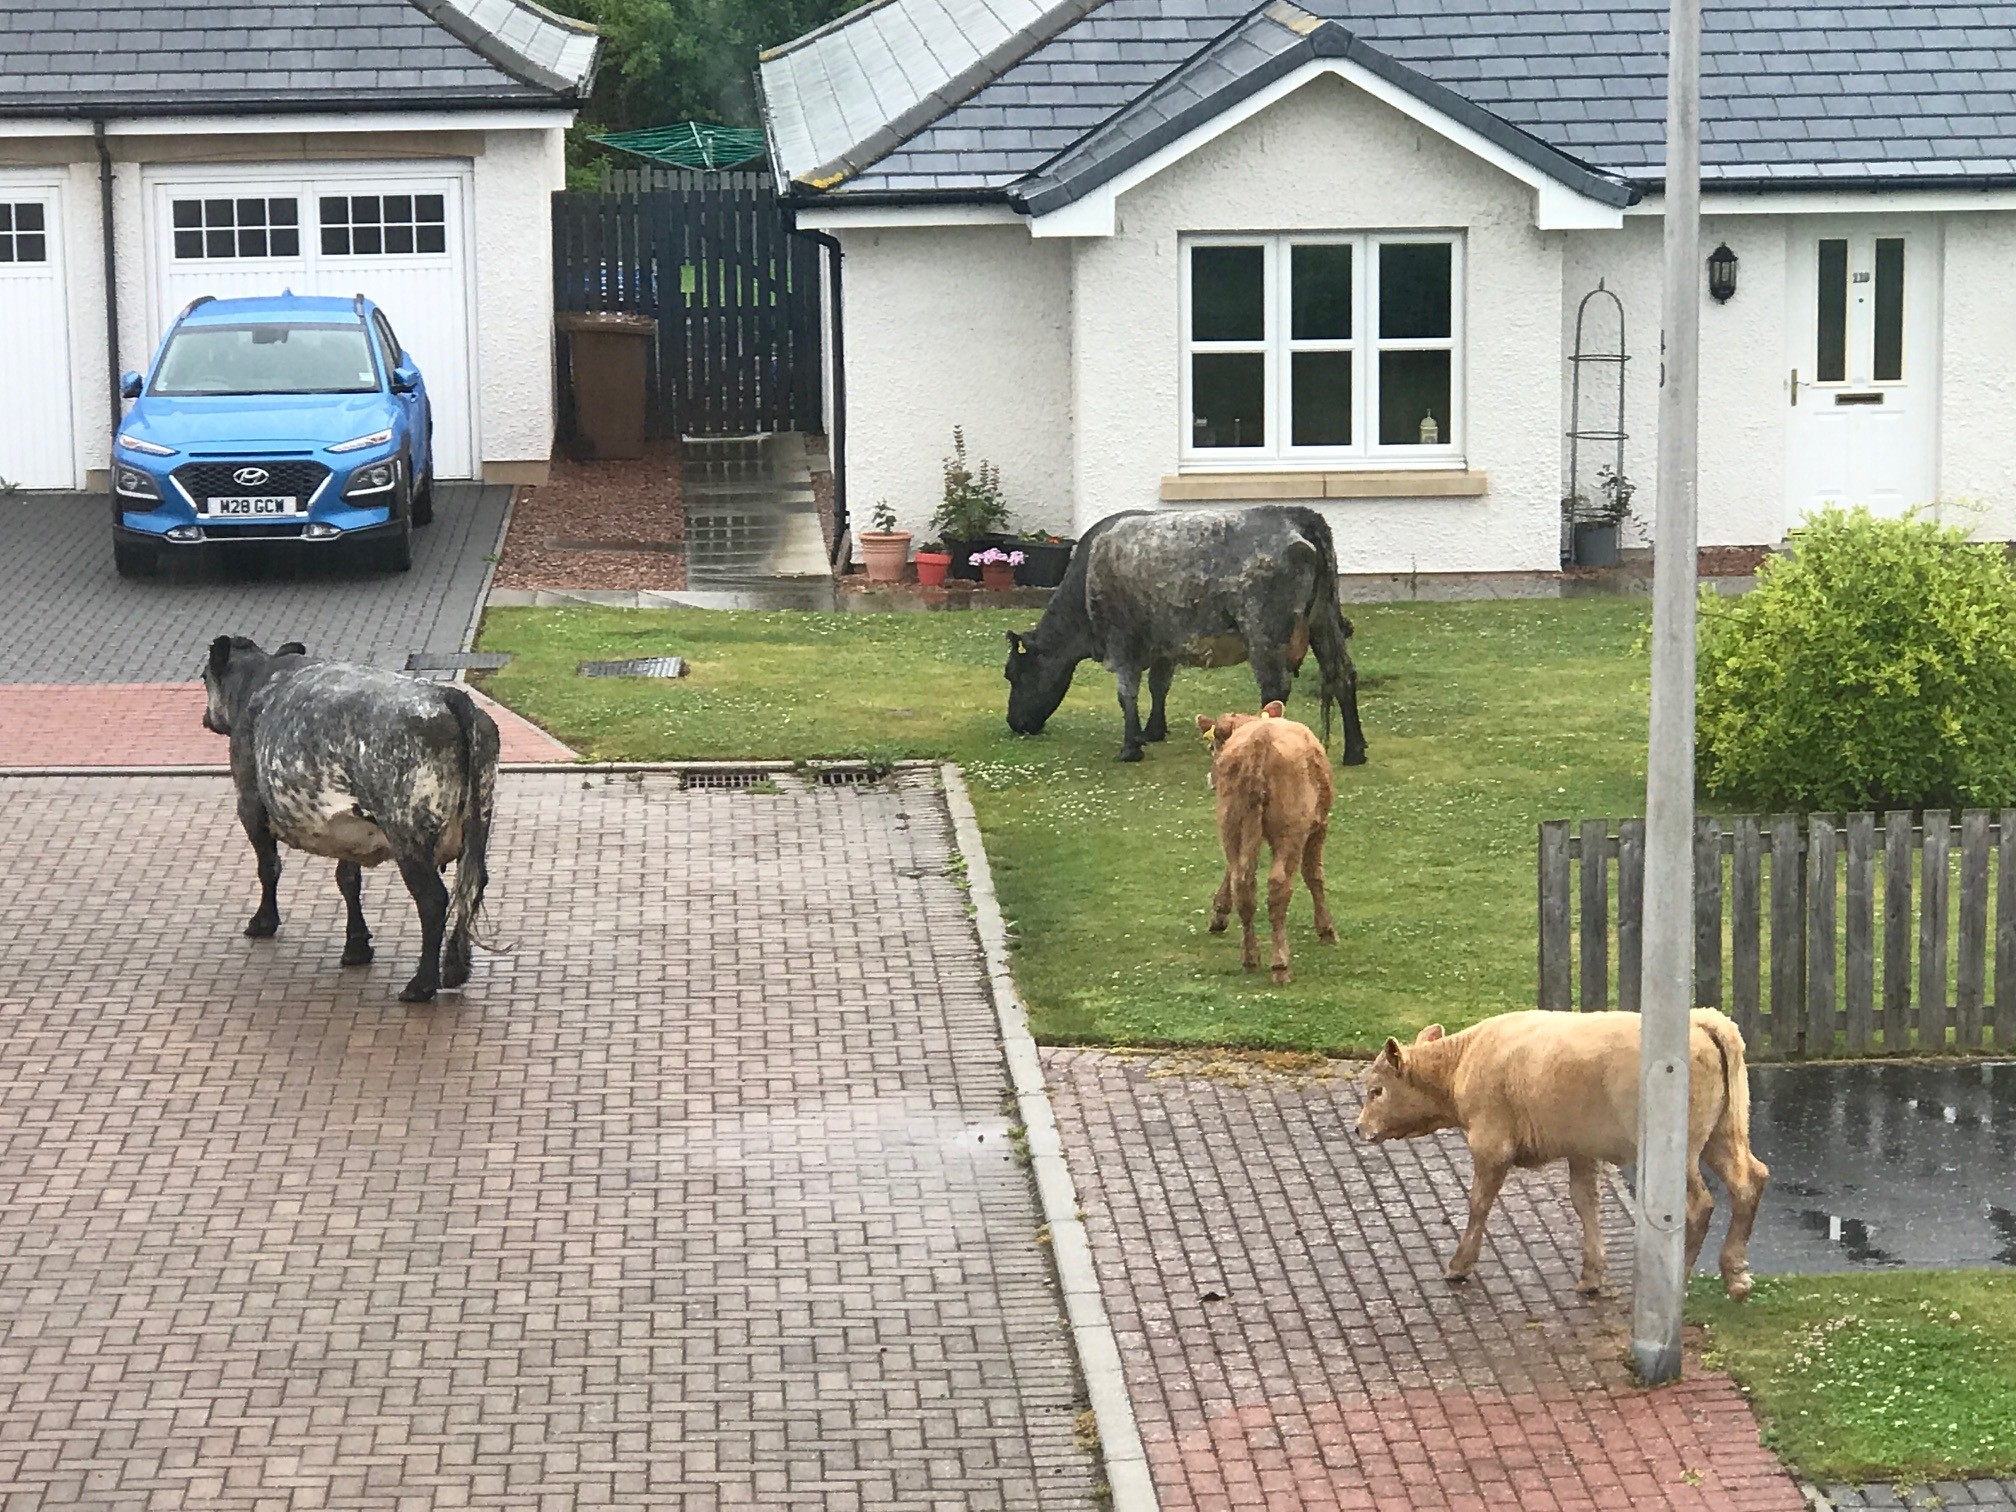 Cows were surprise visitors to Ferryfields in Broughty Ferry on Sunday night.